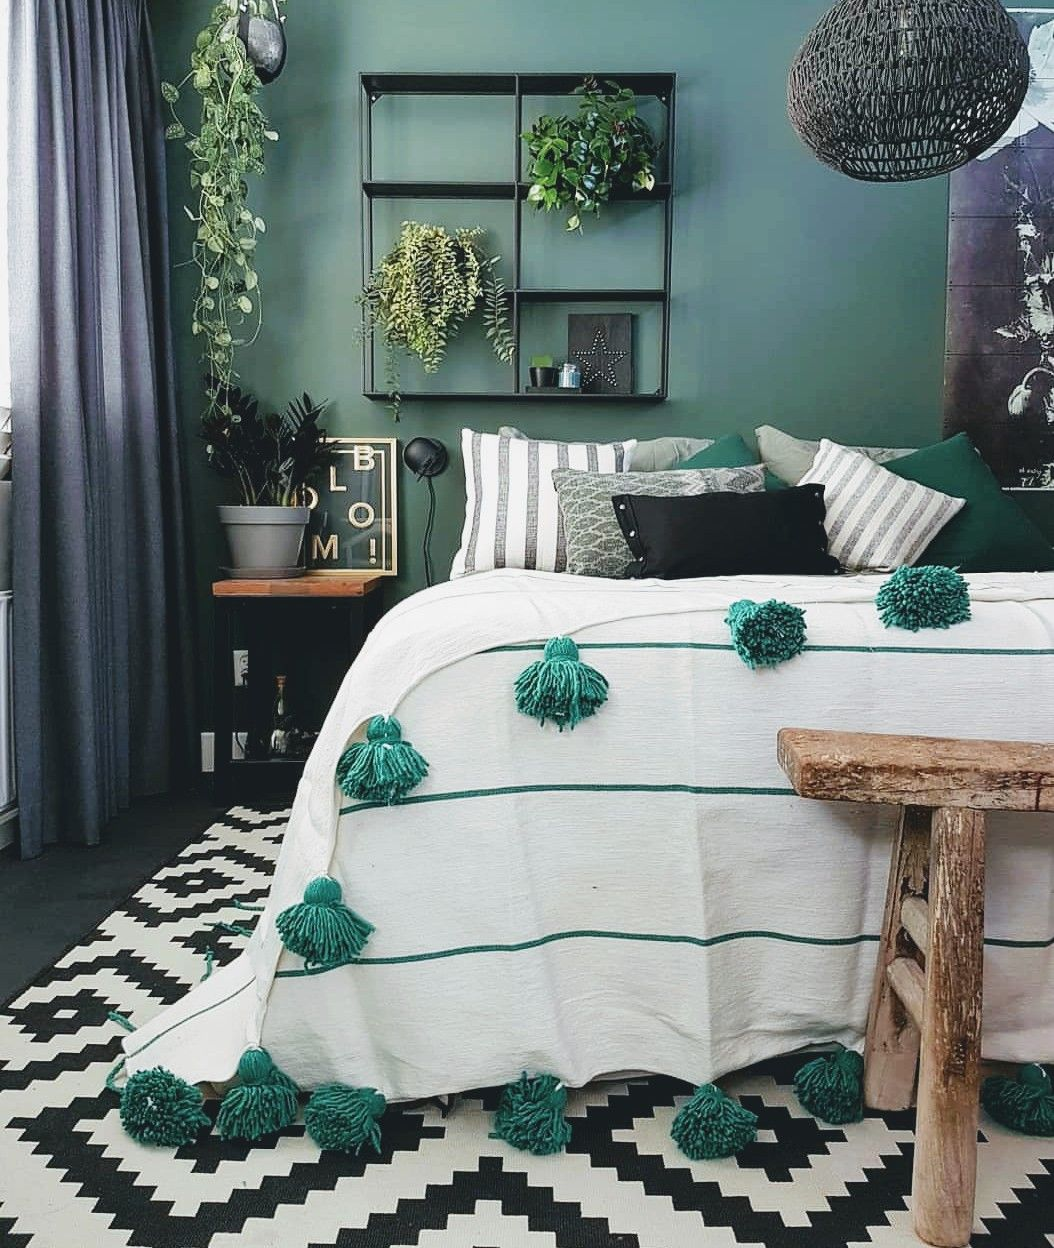 Best Bedroom Colors For Sleeping: Beautiful Bedroom Decor, Home Decor